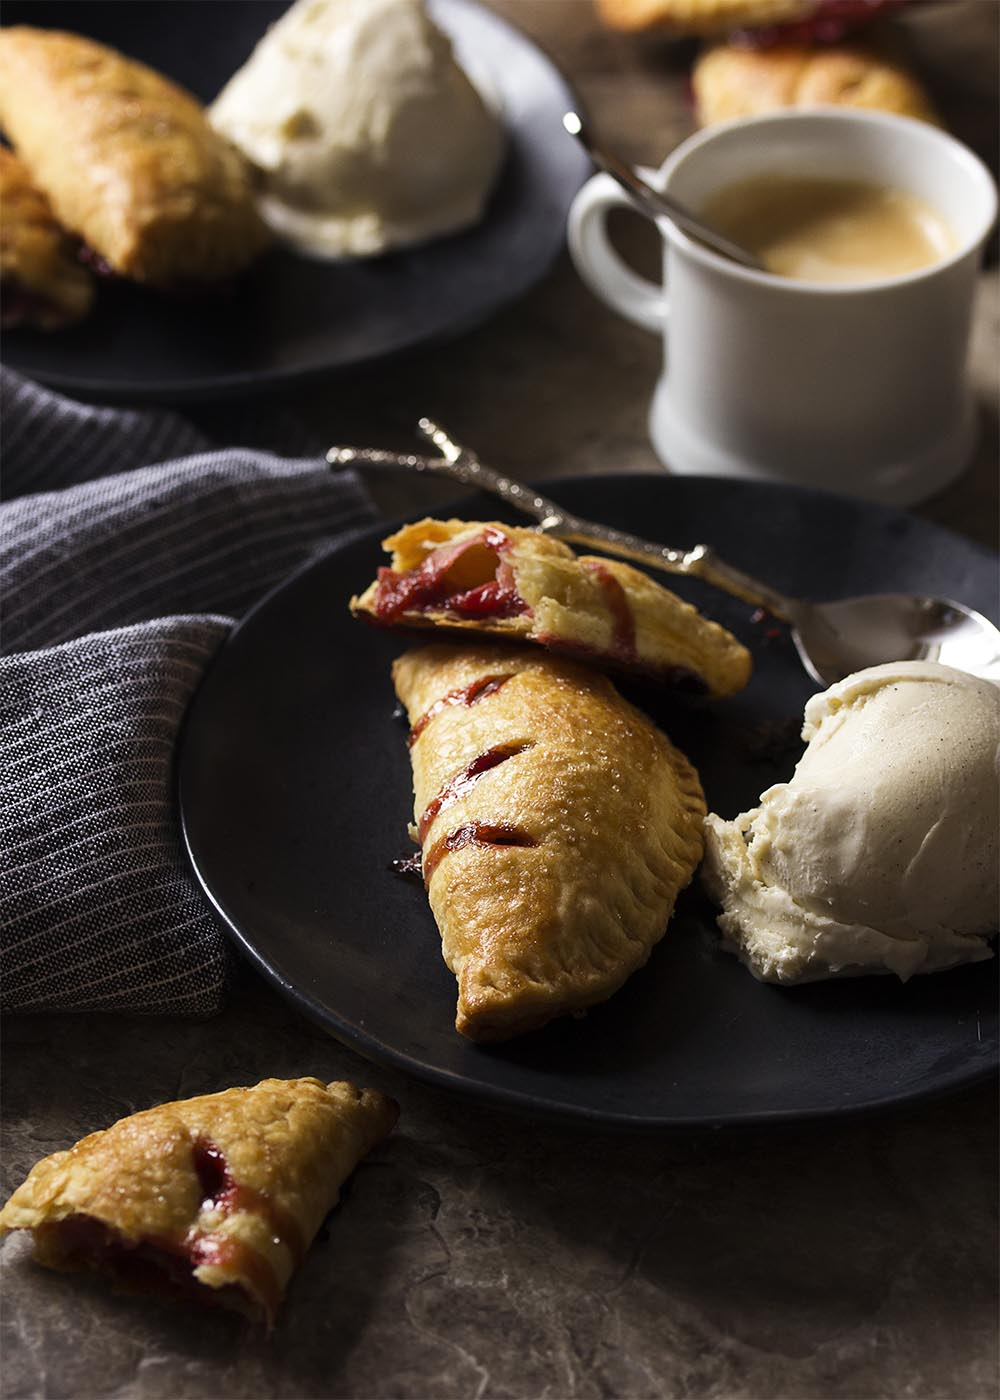 Strawberry rhubarb hand pies on a plate with vanilla ice cream and one pie broken up to show the filling.